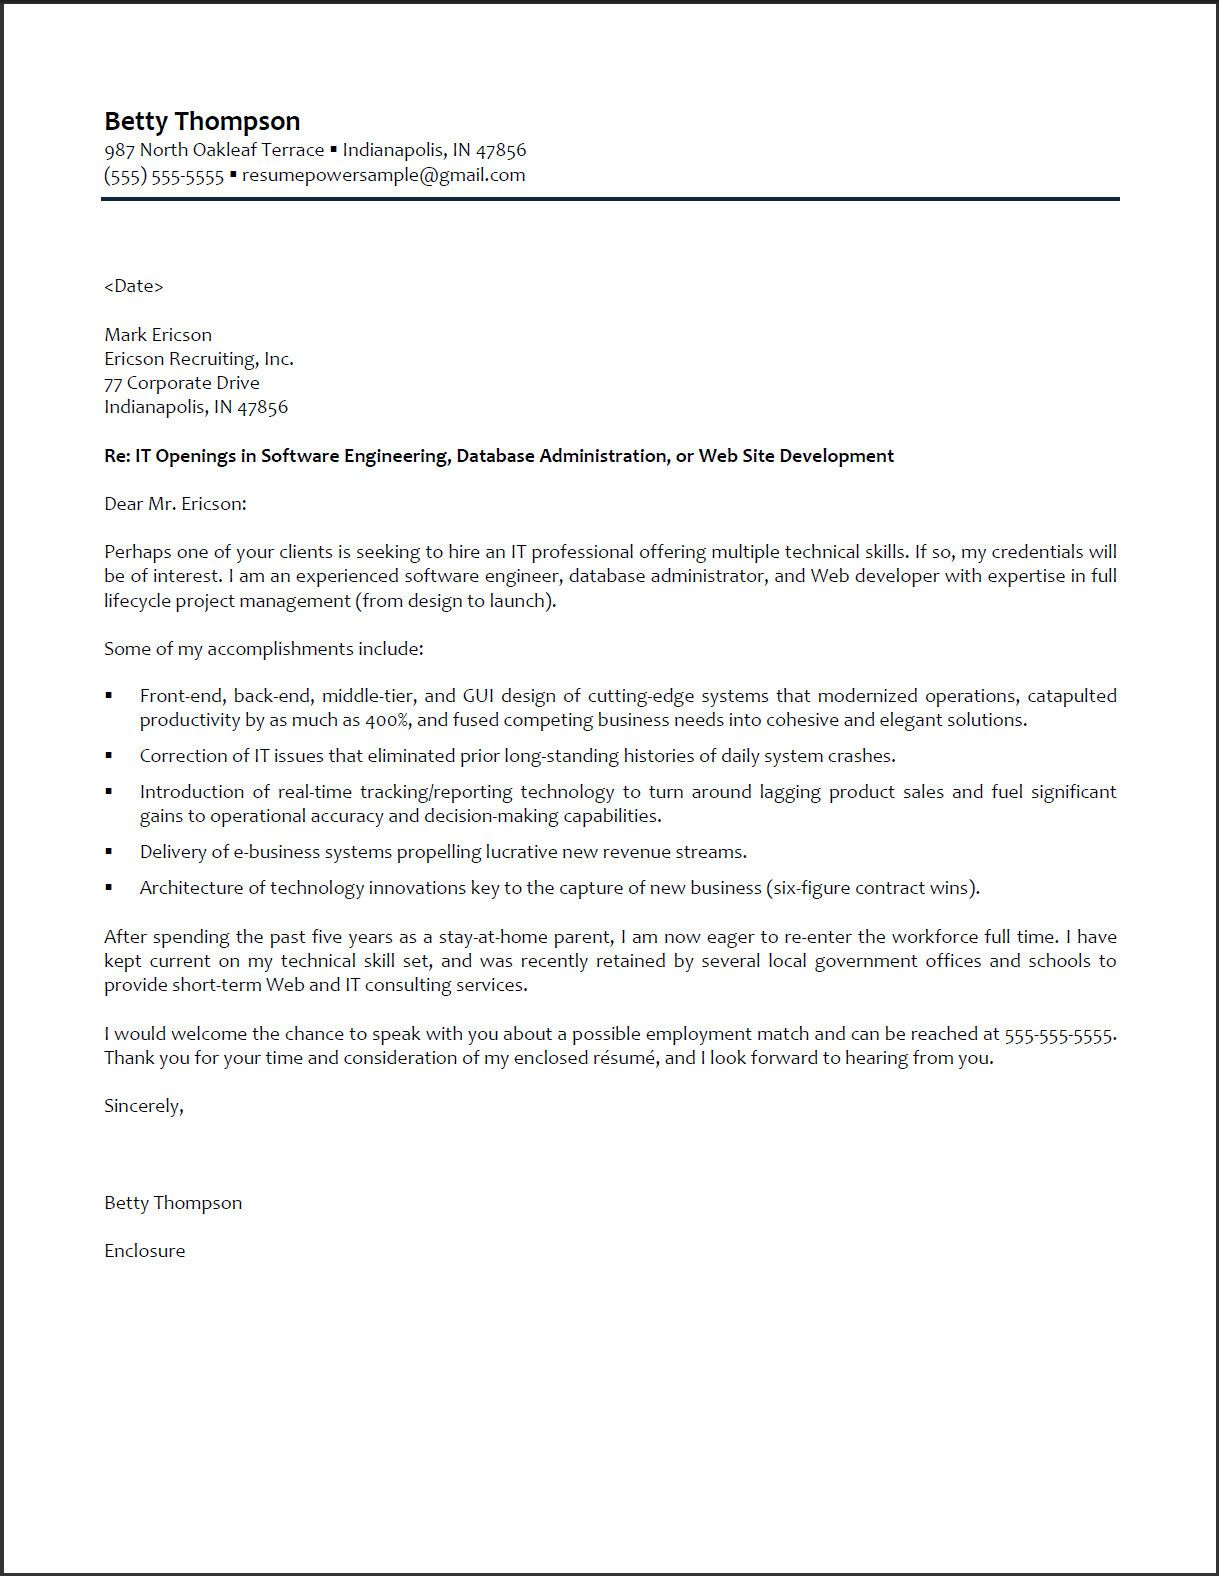 Resume Cover Letter Examples For College Students General Cover - Revenue agent cover letter